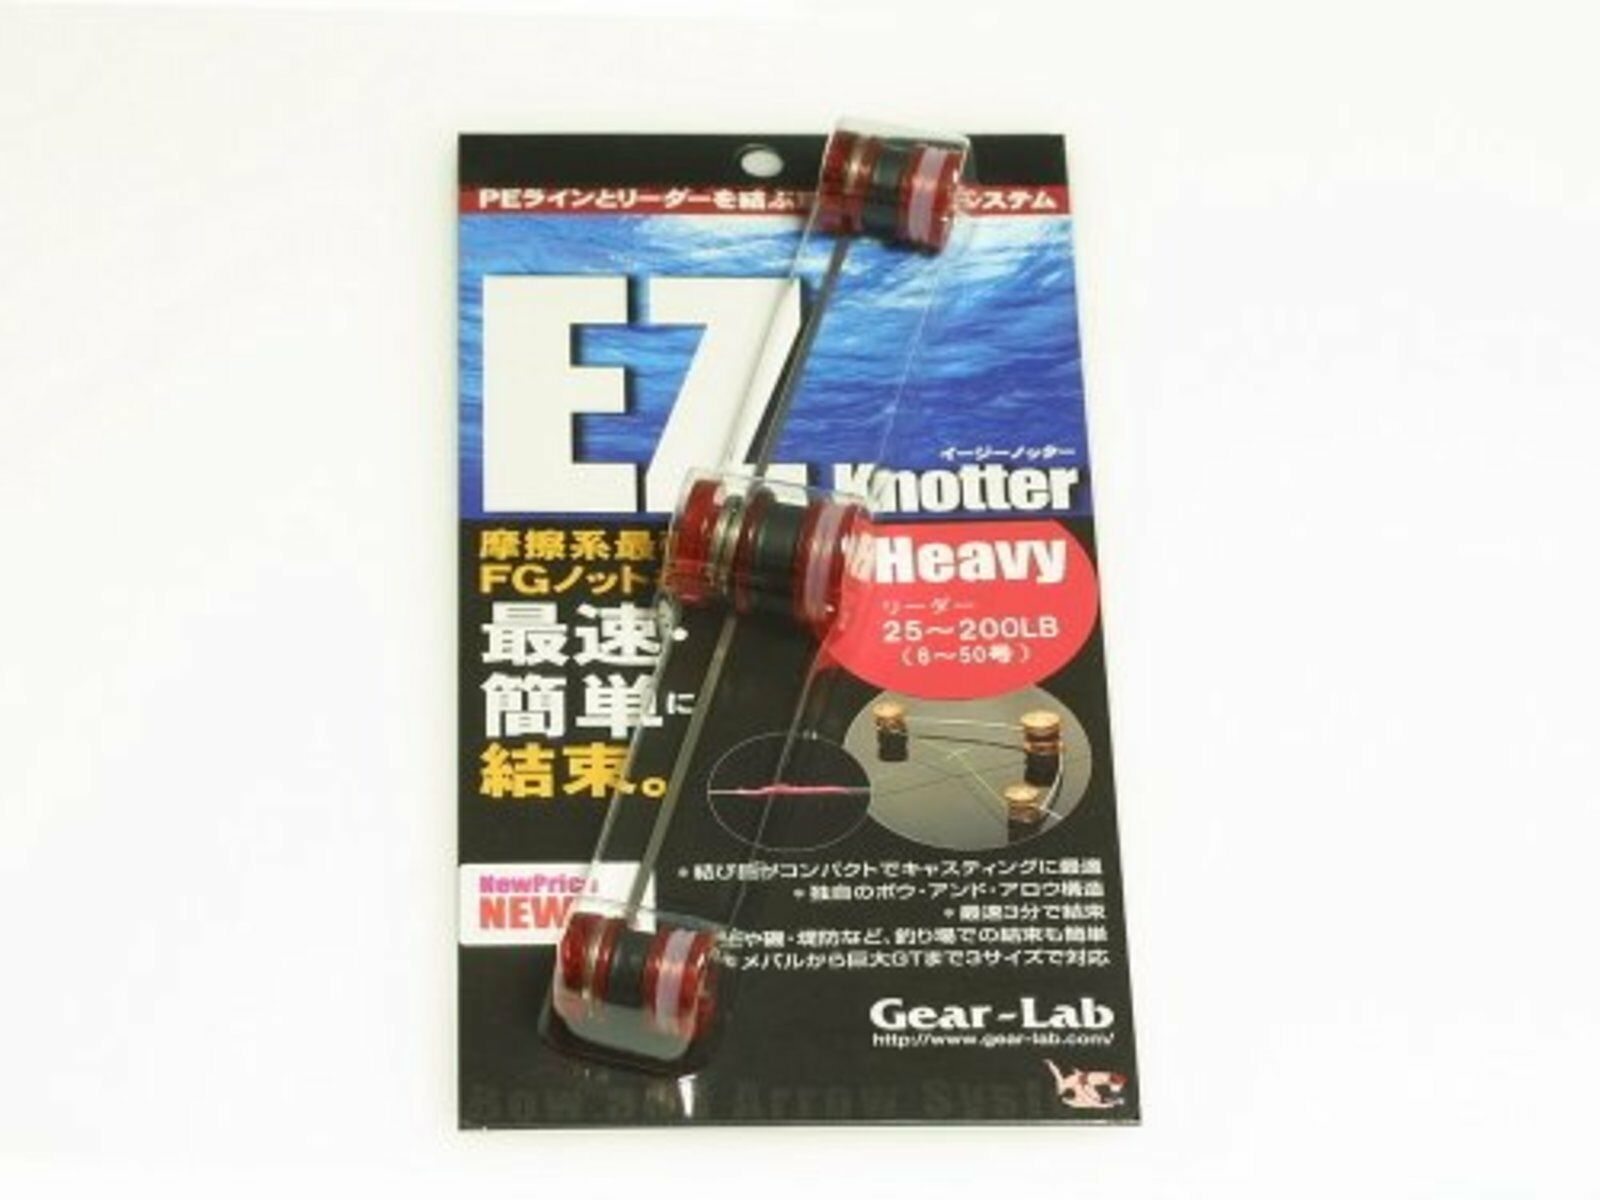 Gear-Lab EZ knotter Over Clear Red Heavy New Japan  import Free Shipping  quality product